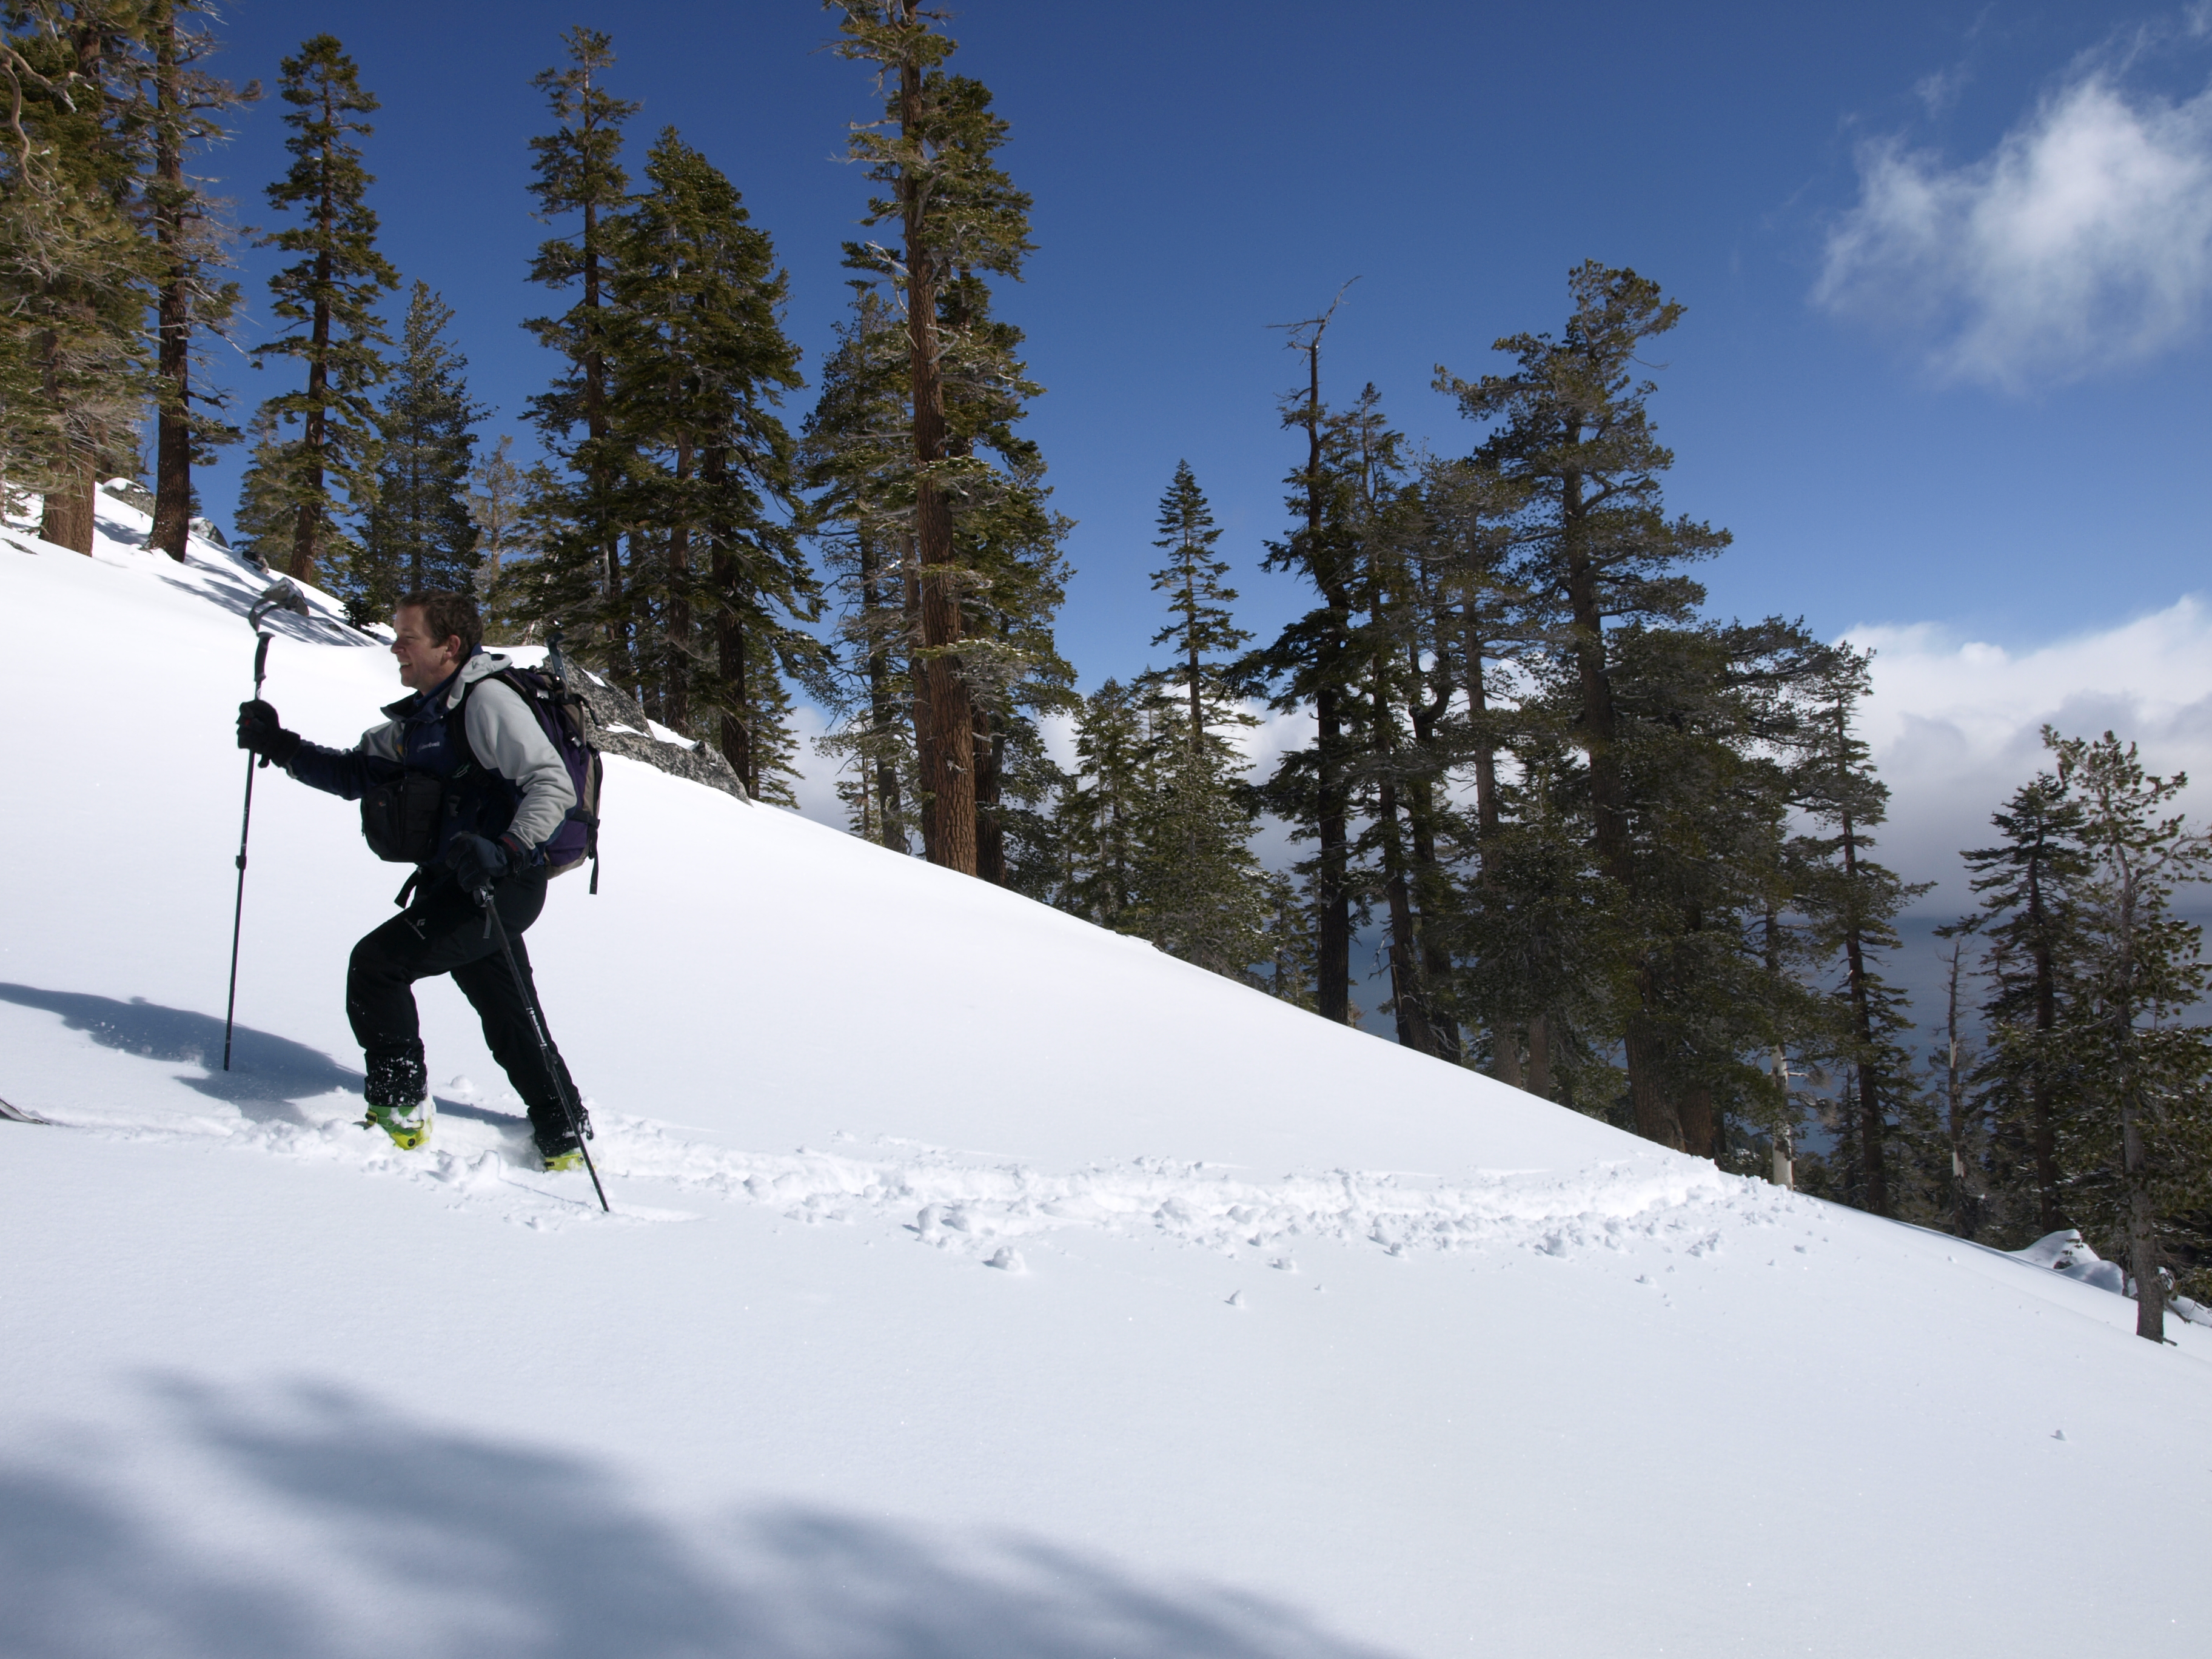 Eric Ongerth breaking trail on the slopes of Tahoe's West Shore.